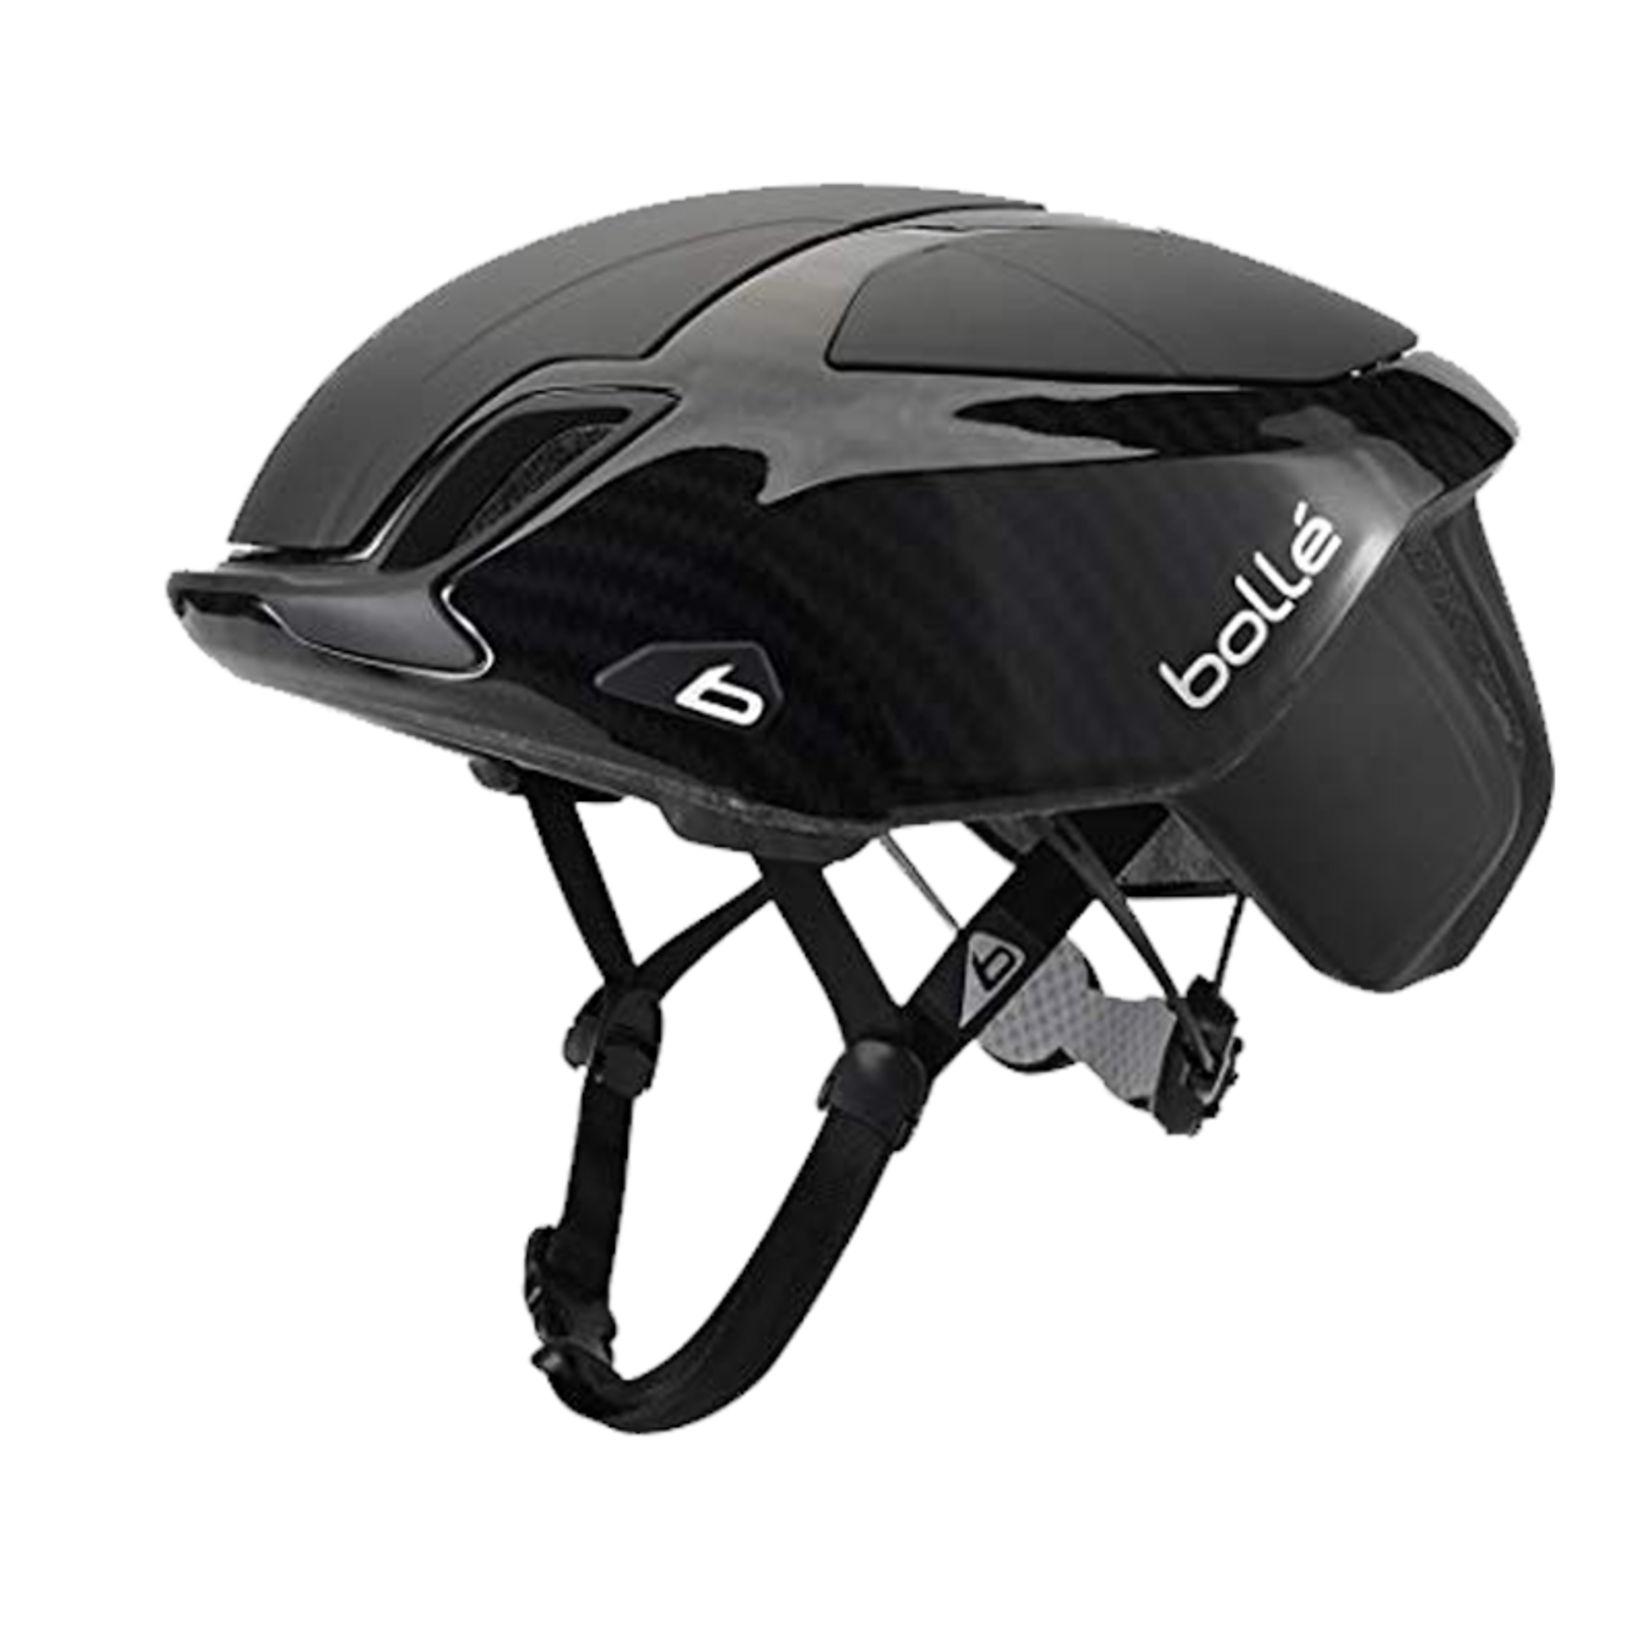 BOLLE Bolle the One Road Premium